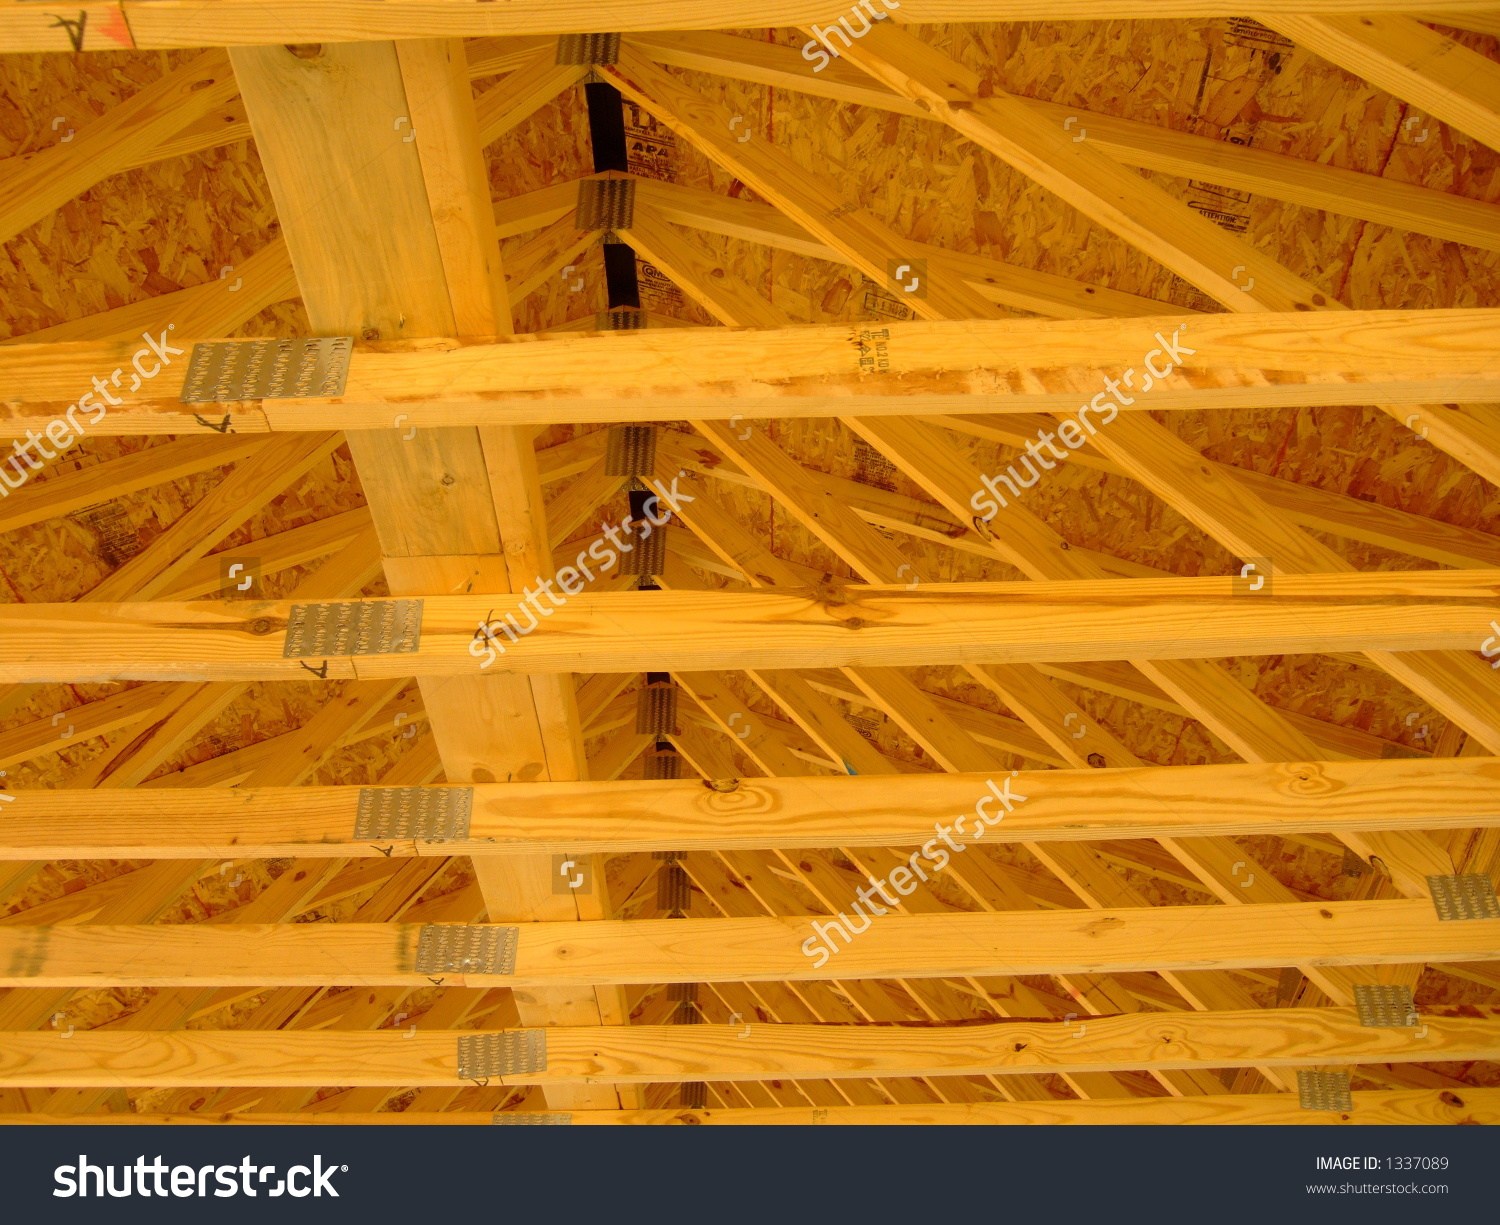 Wooden Rafters Stock Photo 1337089 : Shutterstock.